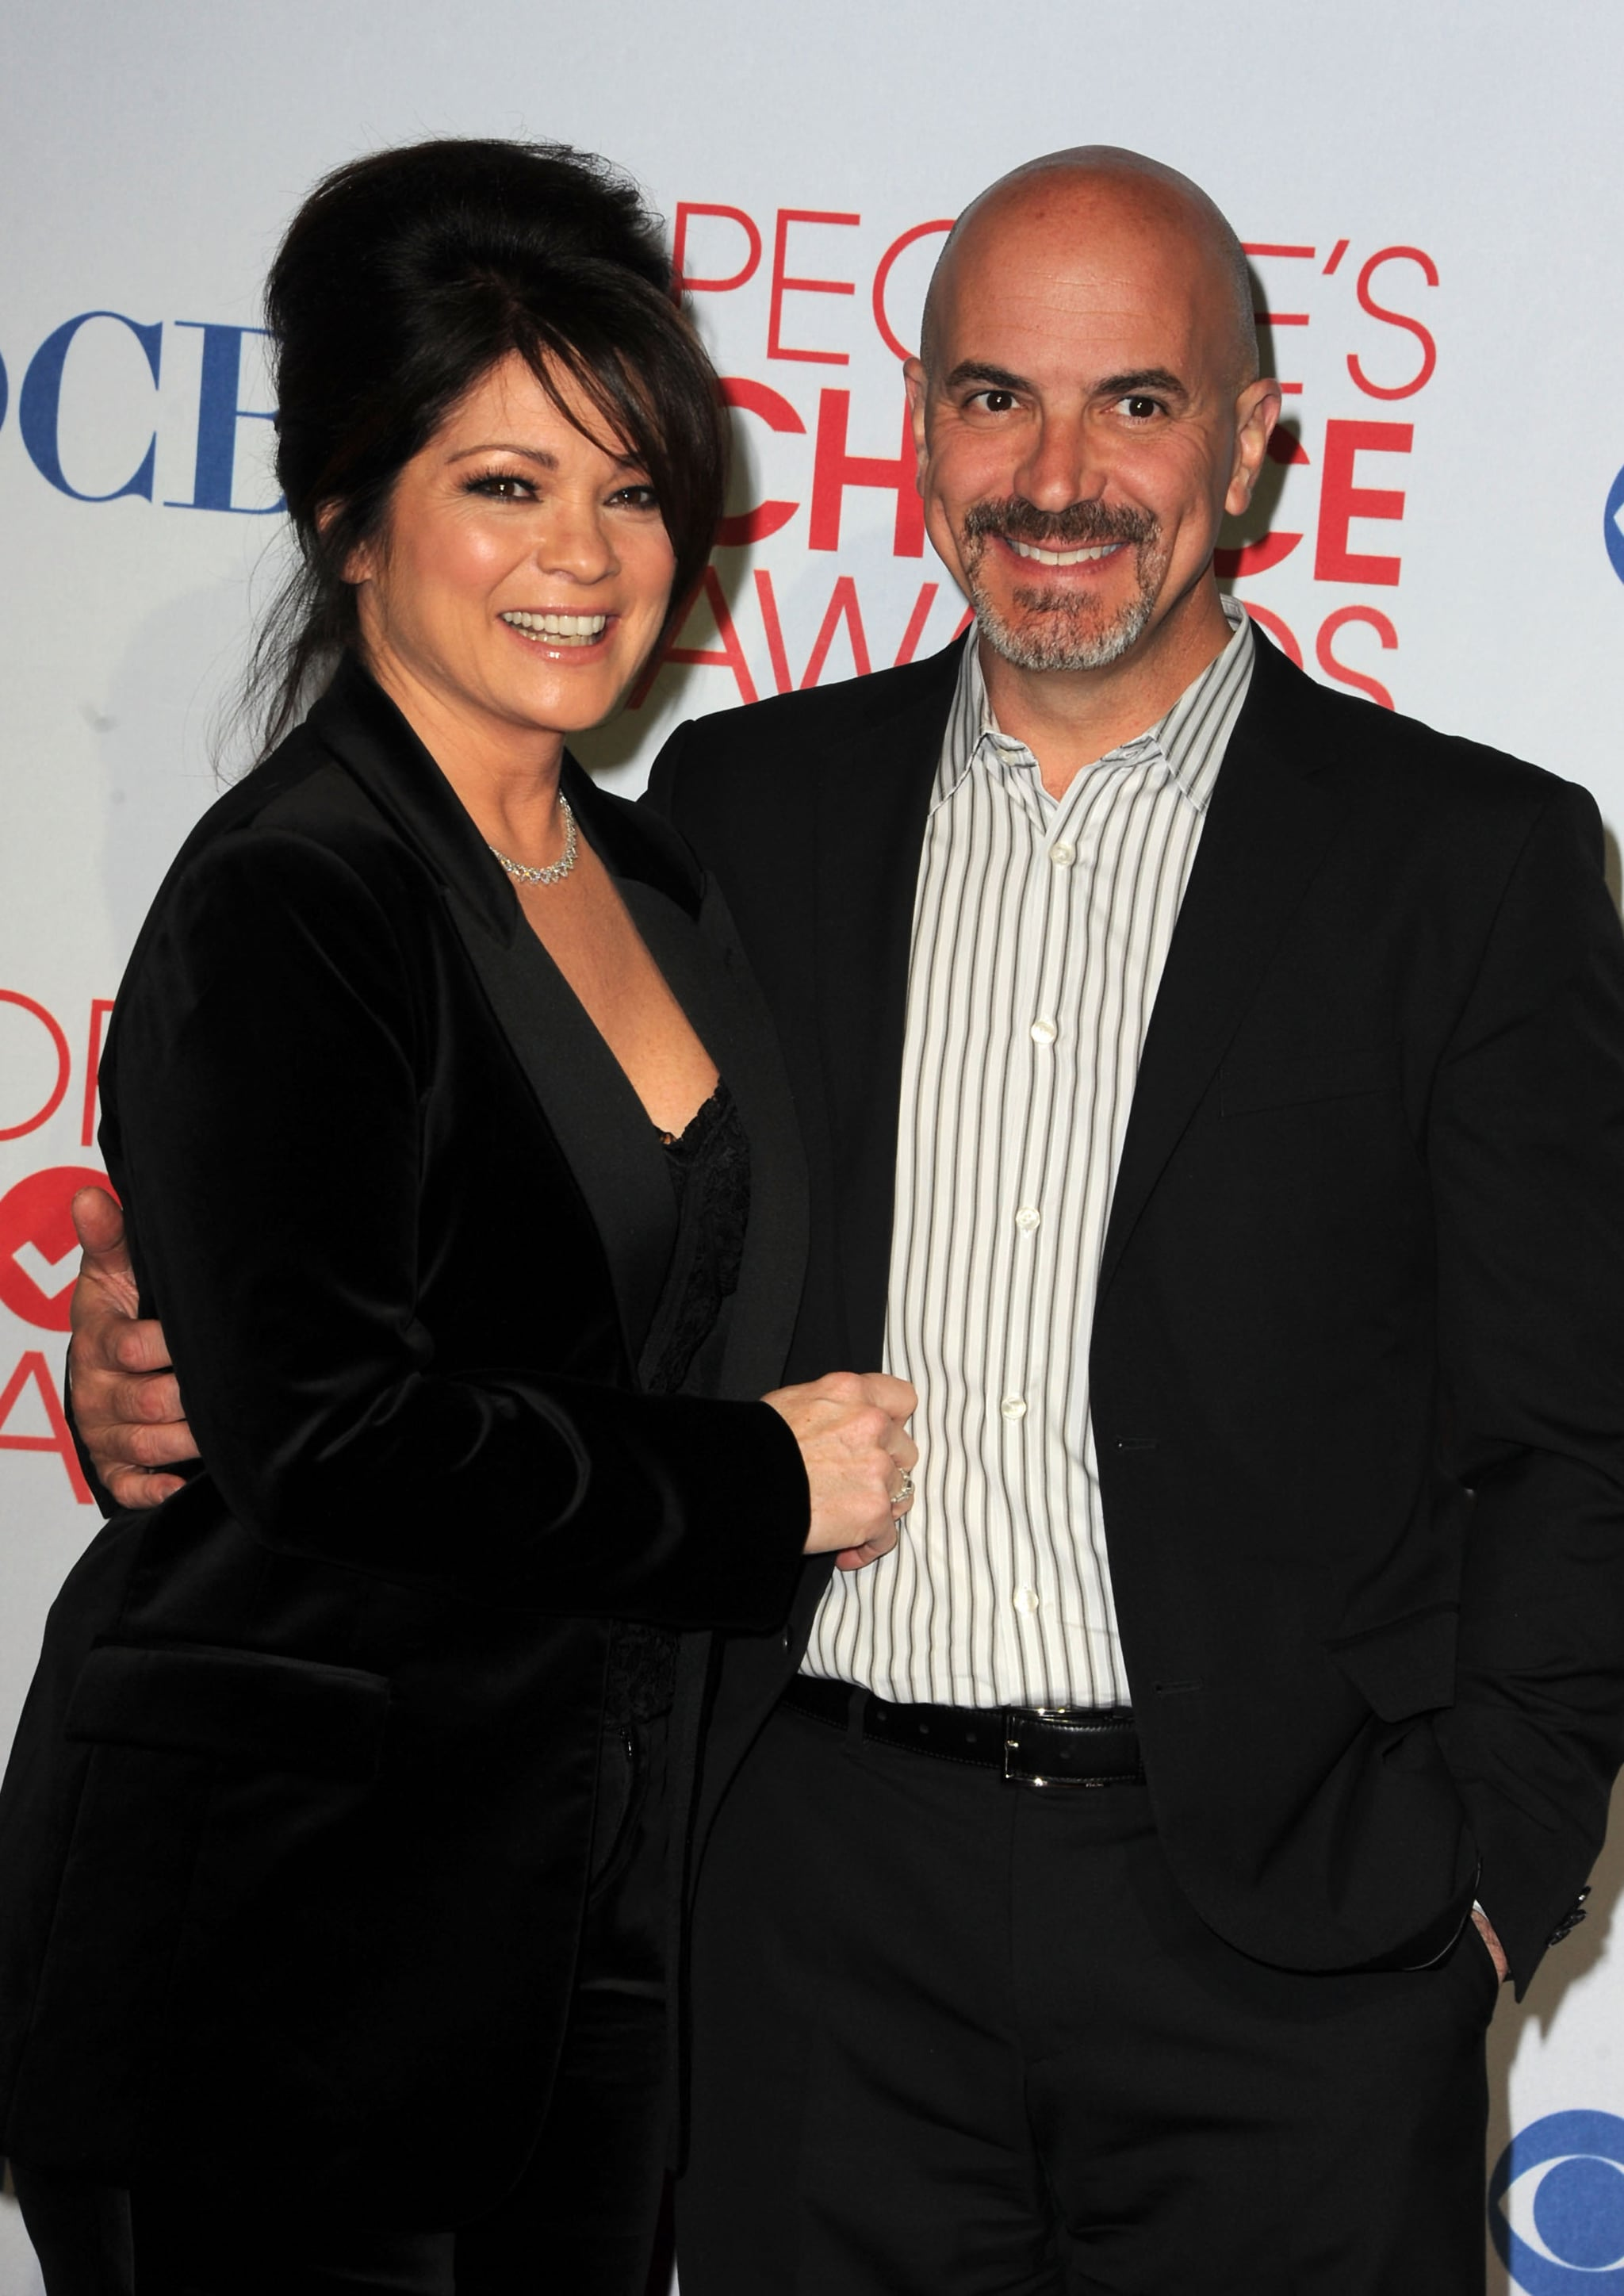 Valerie Bertinelli And Tom Vitale 28 Celebrities Who Got Married Later In Life Popsugar Celebrity Photo 25